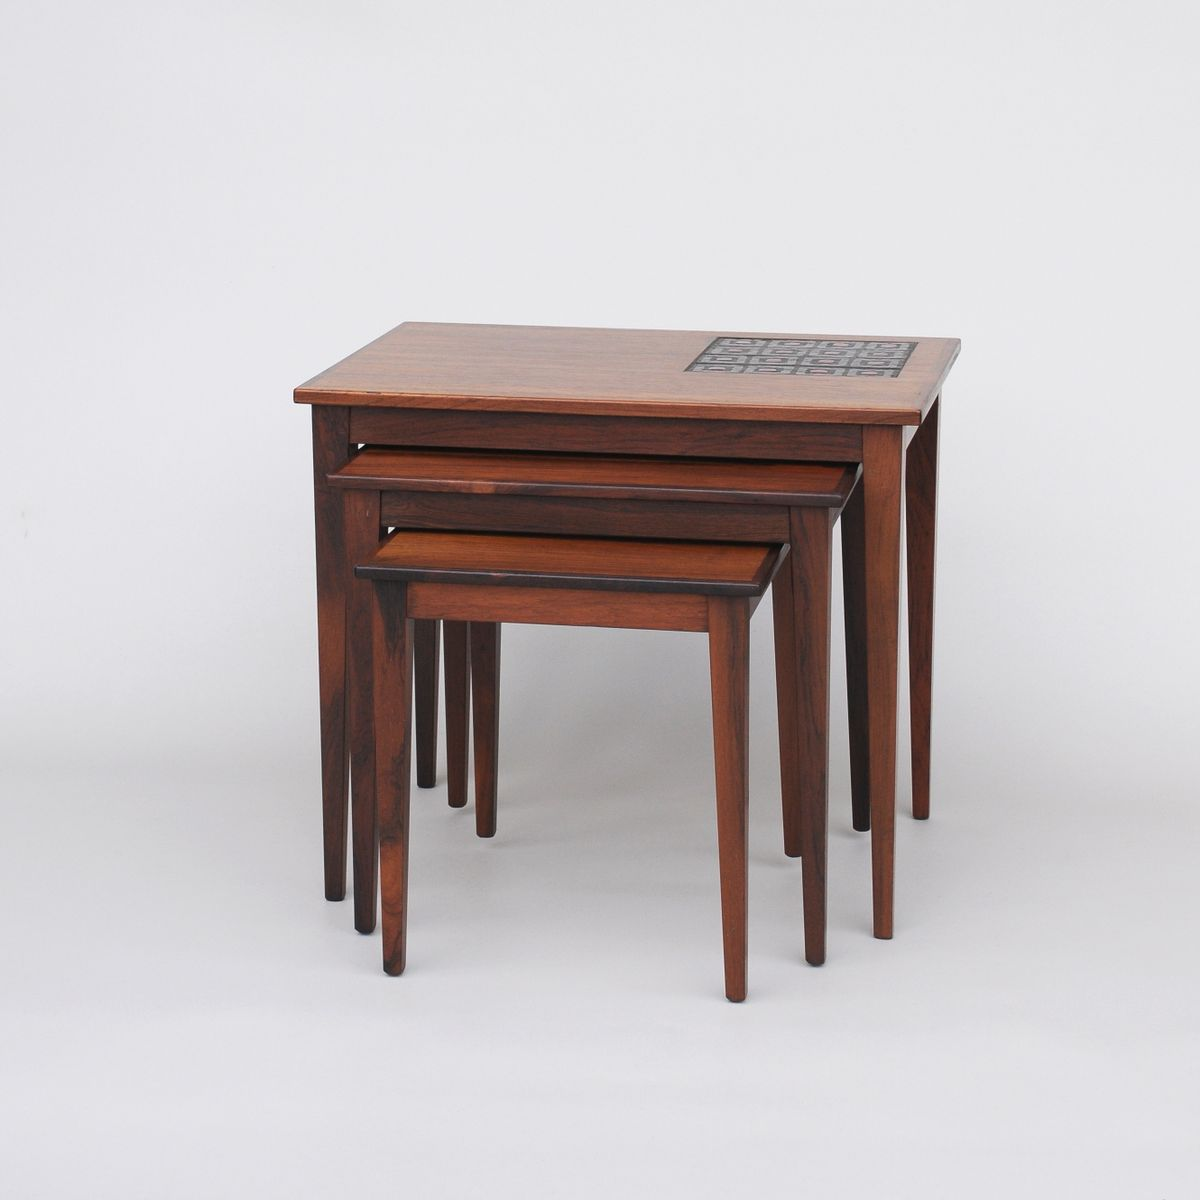 Amazing photo of Danish Rosewood Nesting Tables 1960s Set of 3 for sale at Pamono with #6E3D30 color and 1200x1200 pixels